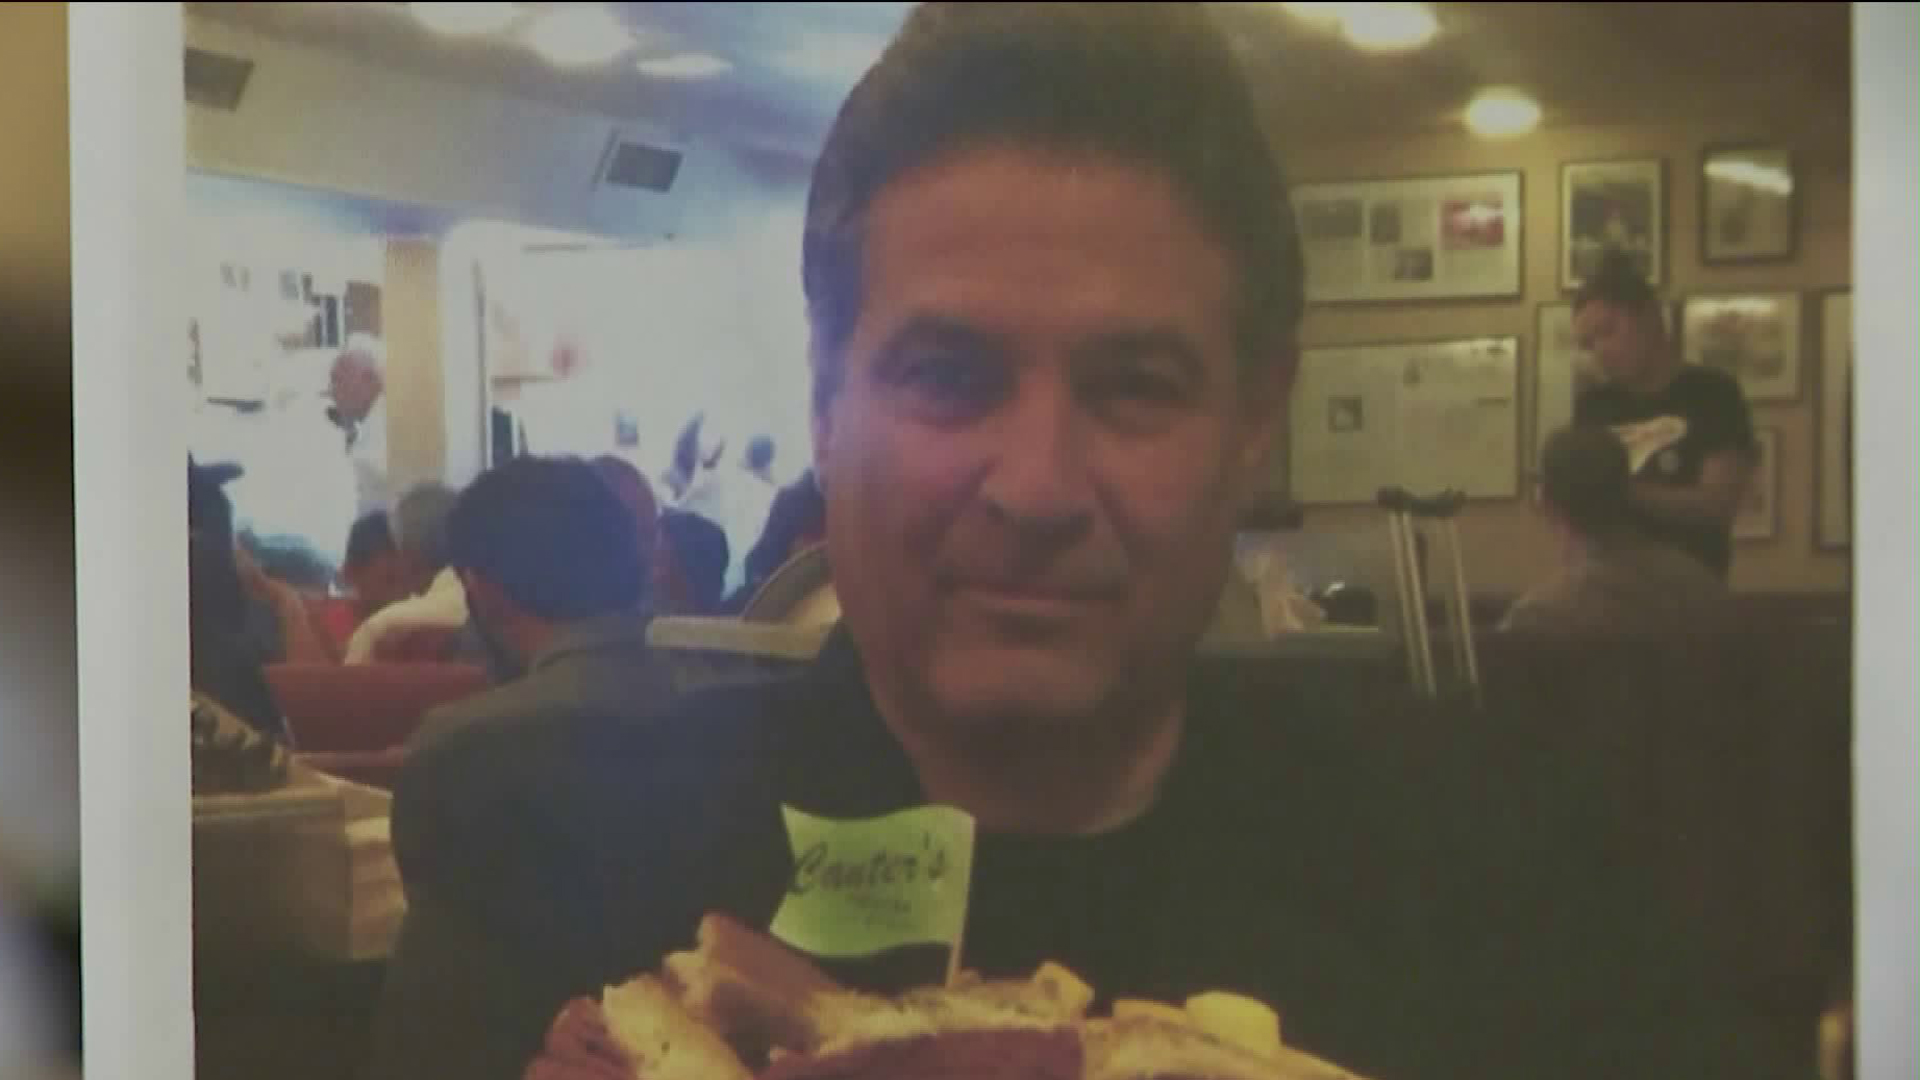 Gary Canter is seen in a photo at Canter's Deli. (Credit: KTLA)